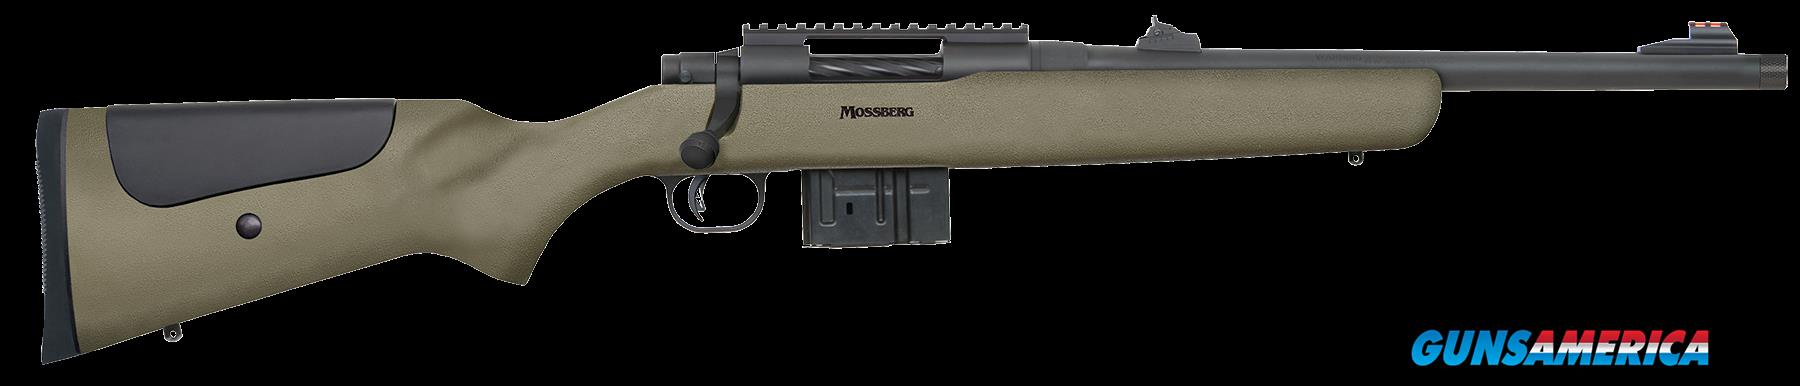 "Mossberg 27699 MVP LR Tactical Bolt 308 Winchester/7.62 NATO 16.25"" 10+1 Synthetic Green Stk Blued  Guns > Rifles > MN Misc Rifles"